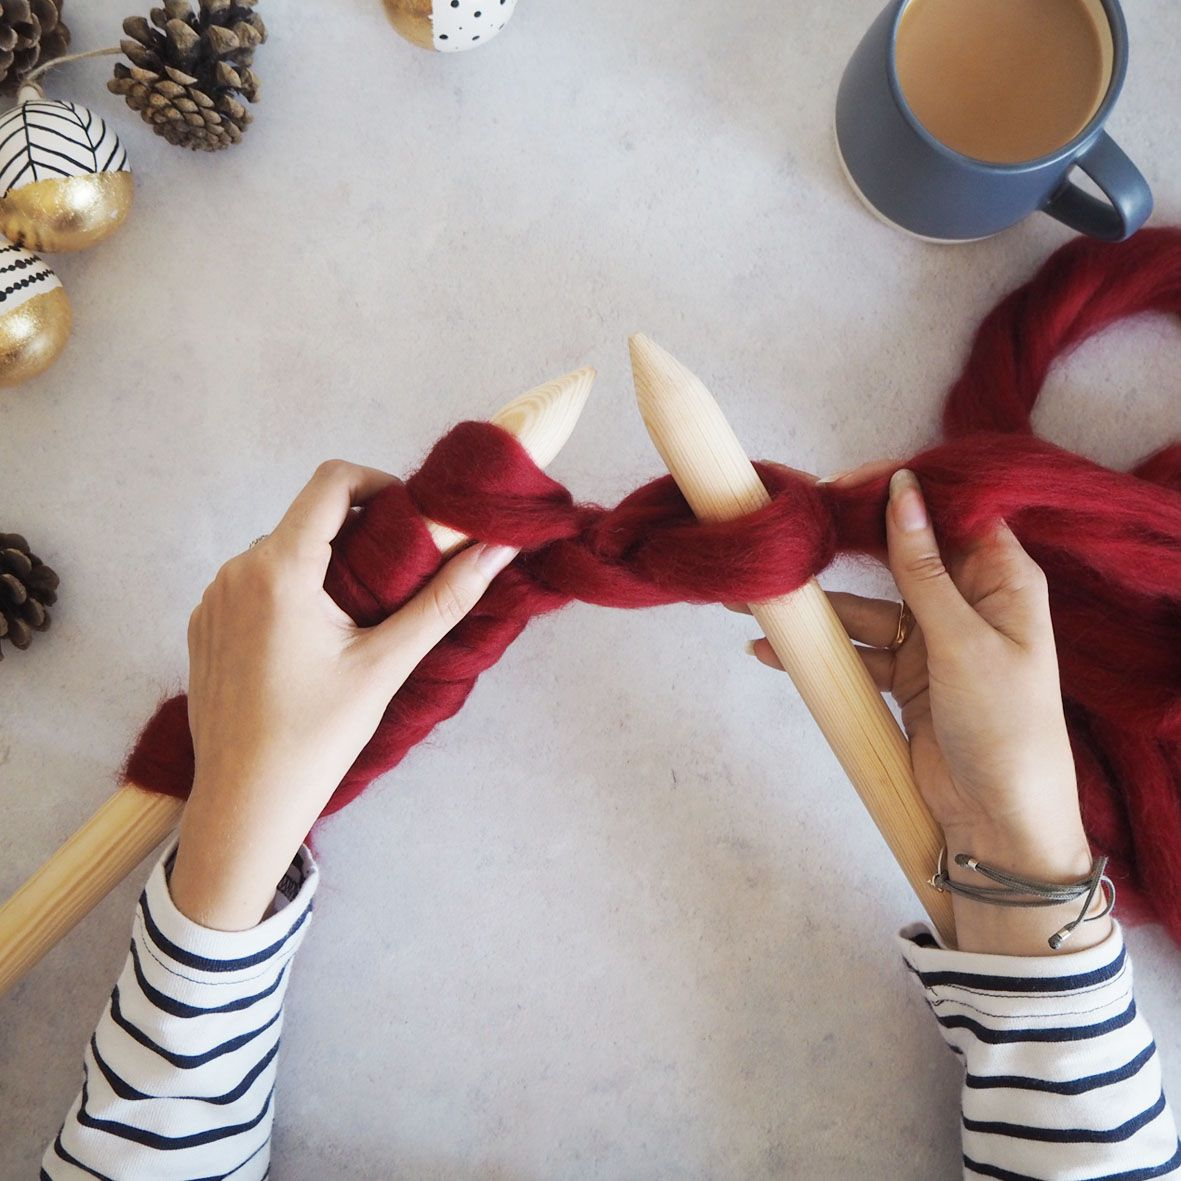 Lets get back to basics with giant knitting. If you're a beginner or need a refresher lesson in the world of knitting, here's Lauren's how to guide for the basic go-to techniques to get you started.